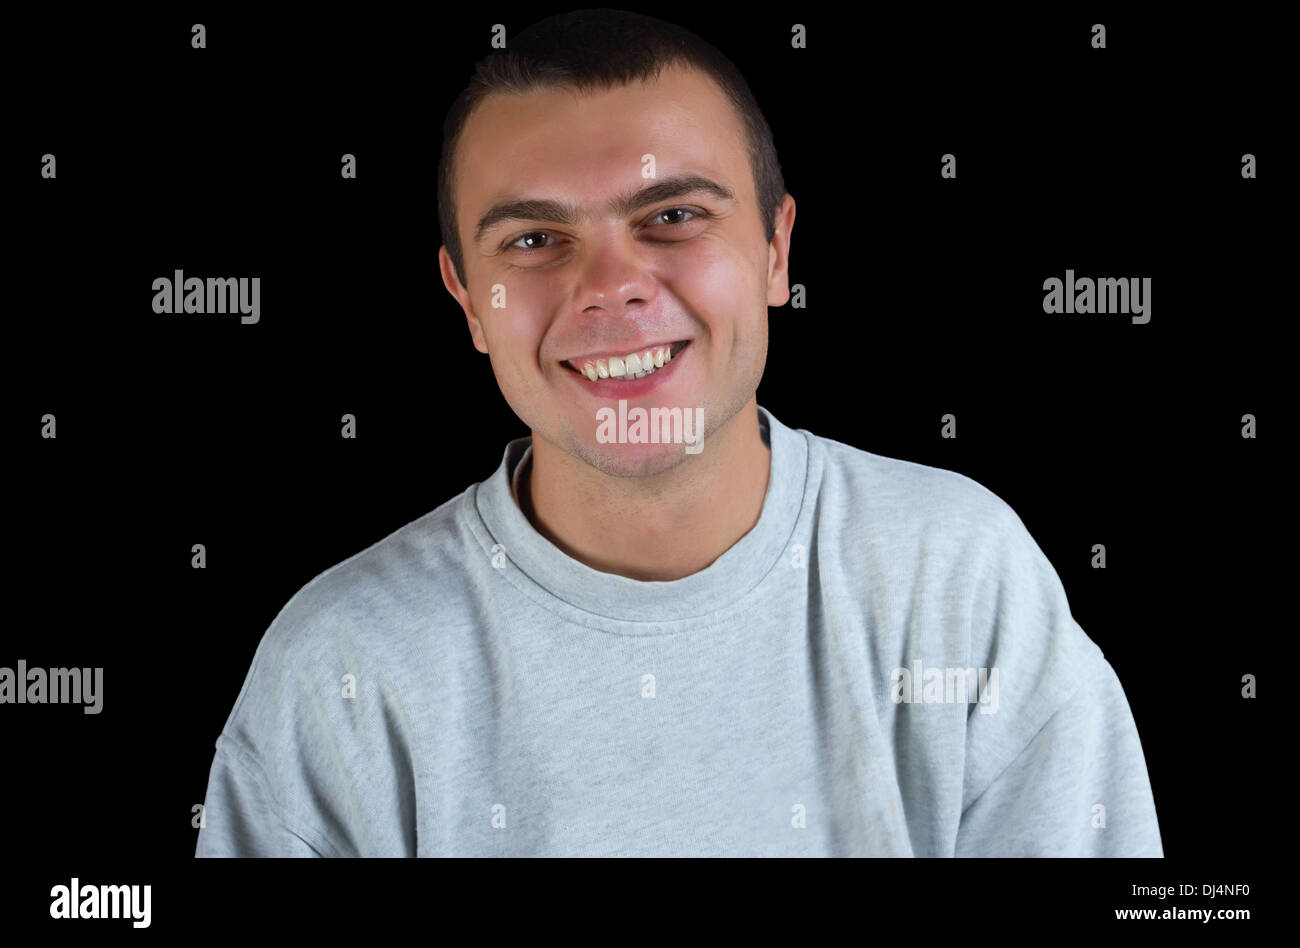 young guy in a track suit on a black background - Stock Image